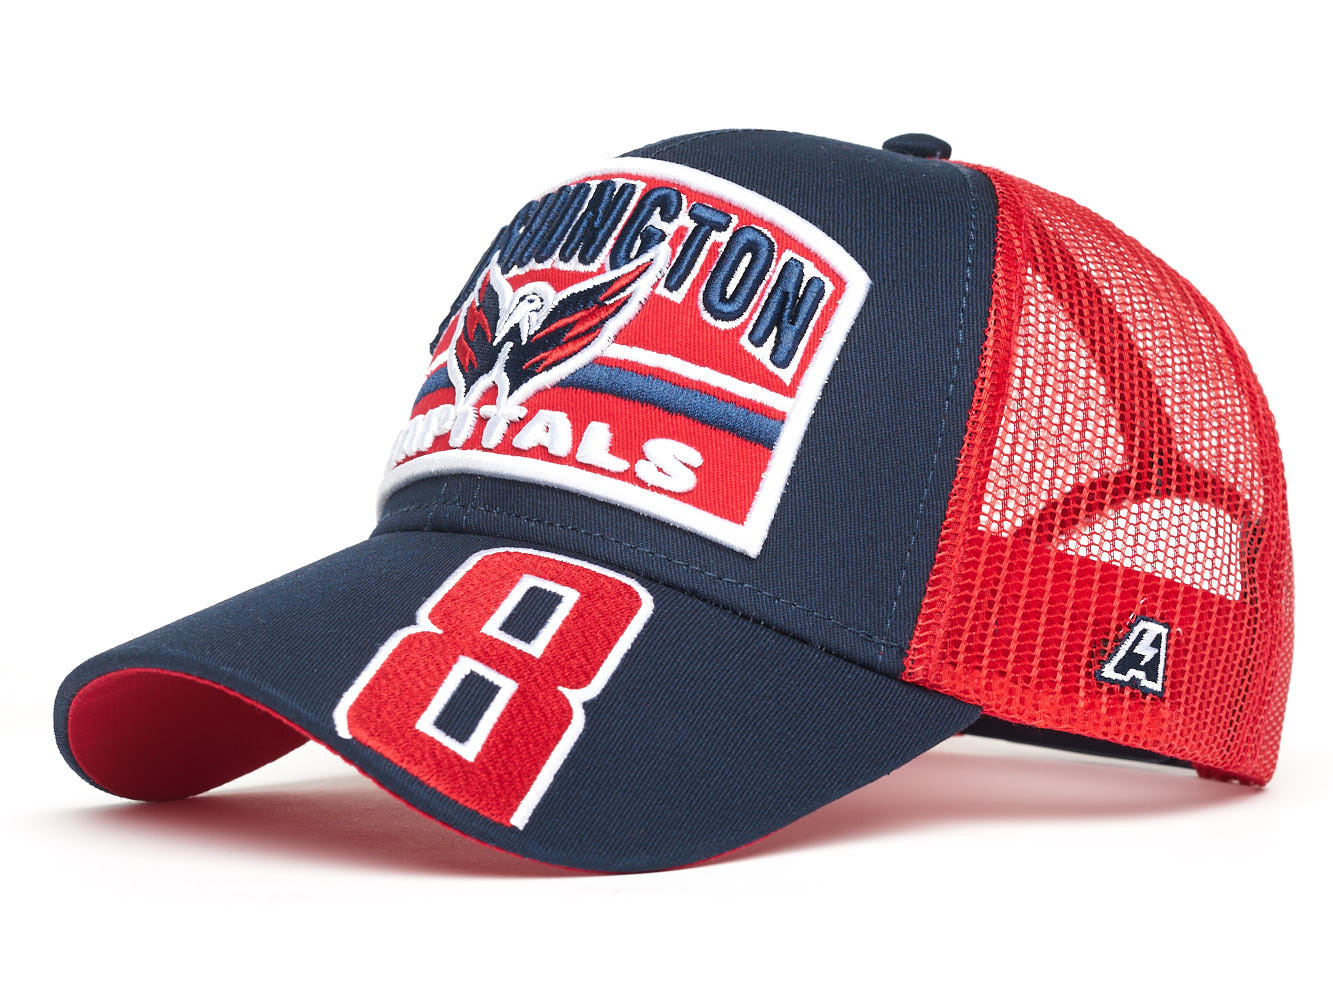 Бейсболка NHL Washington Capitals № 8